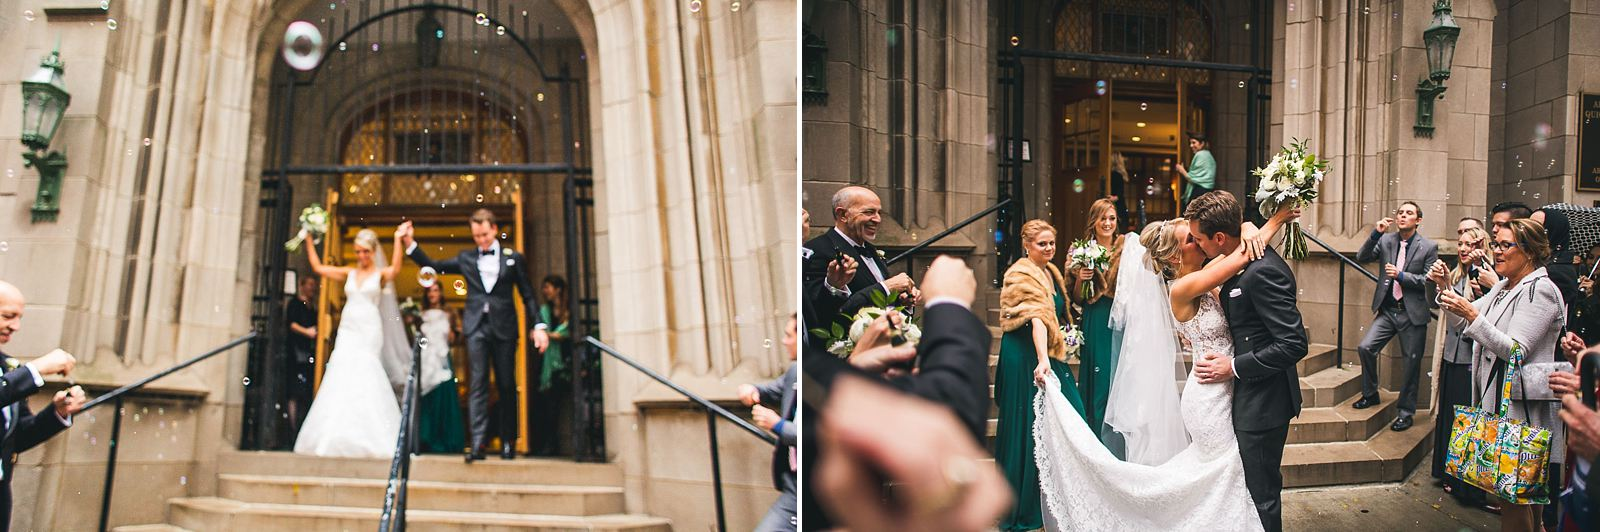 28 kissing outside church - Ivy Room Wedding // Audrey + Tyler